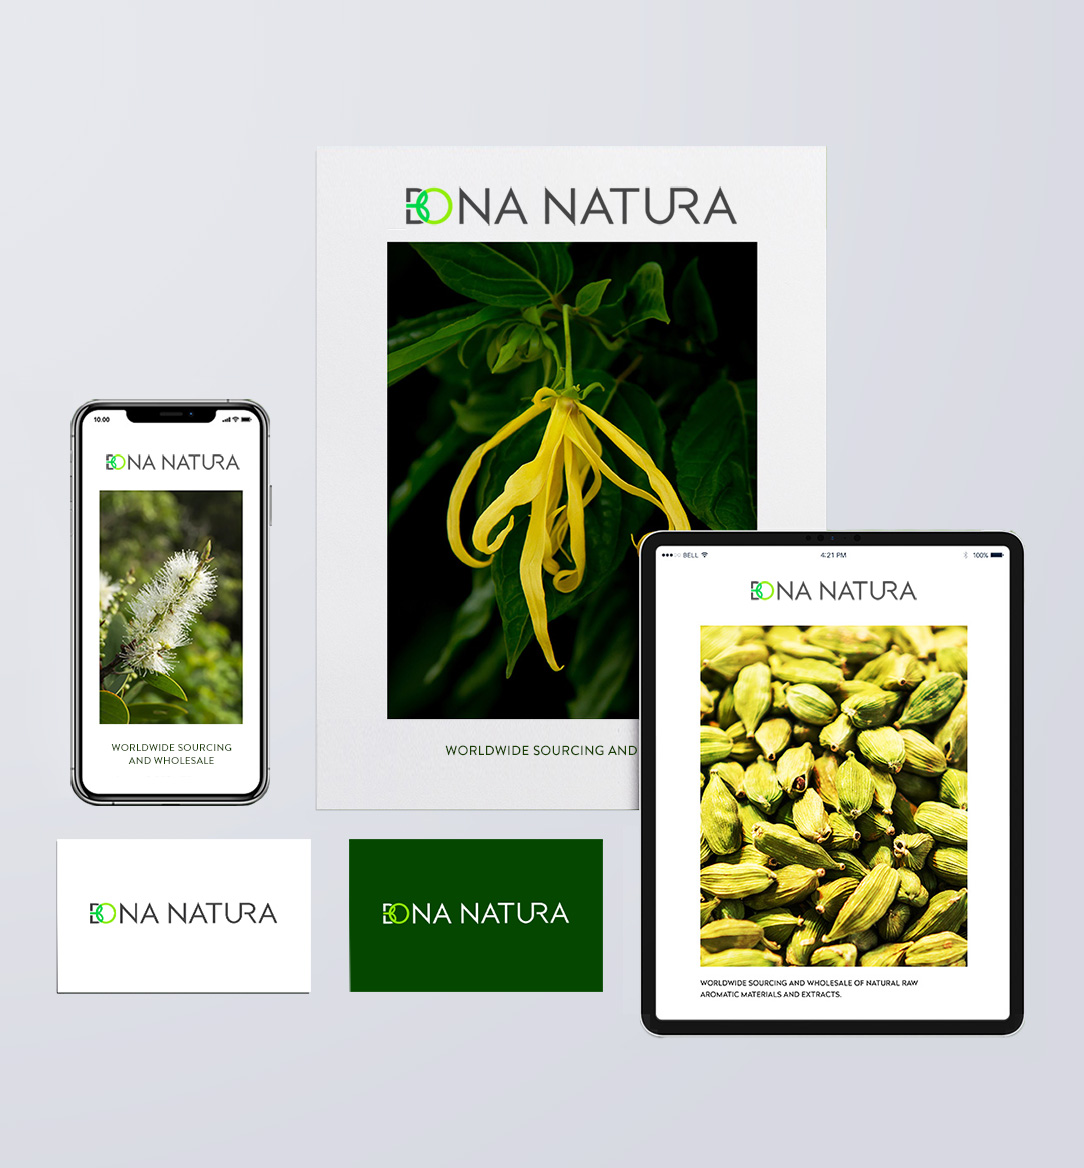 bonanatura_branding_elements_mobile